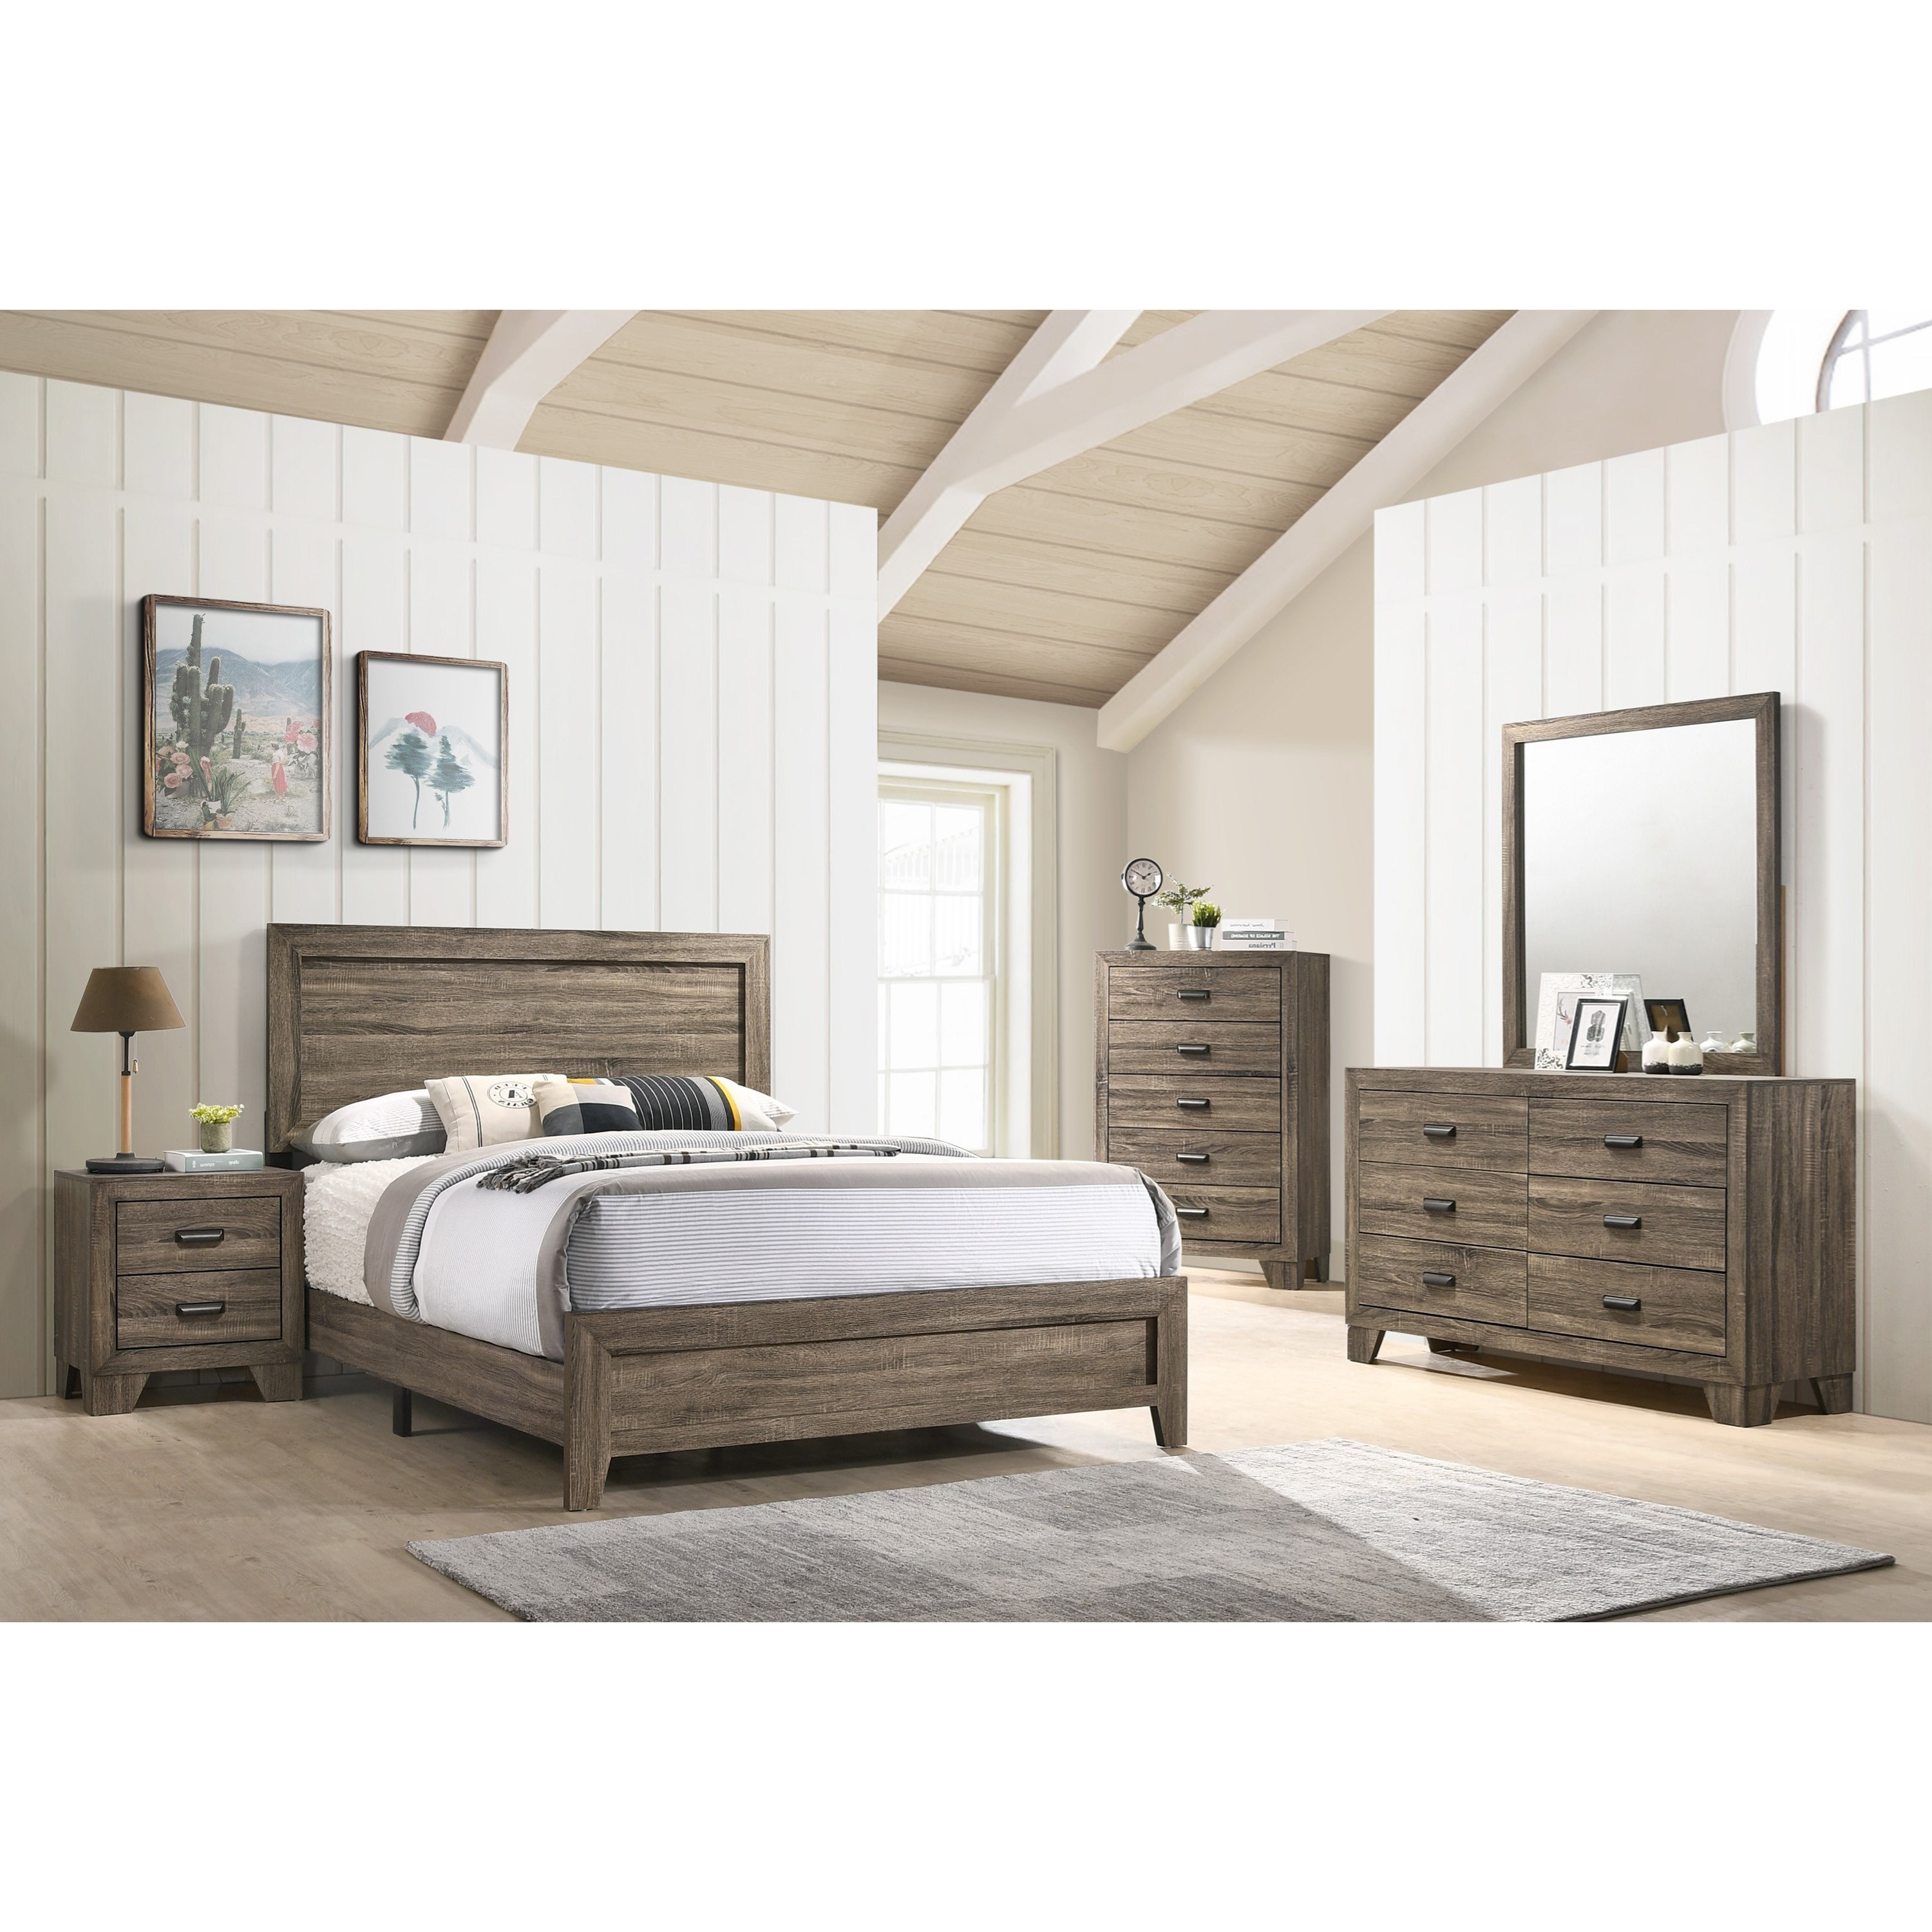 Millie Full Bedroom Group by Crown Mark at Northeast Factory Direct